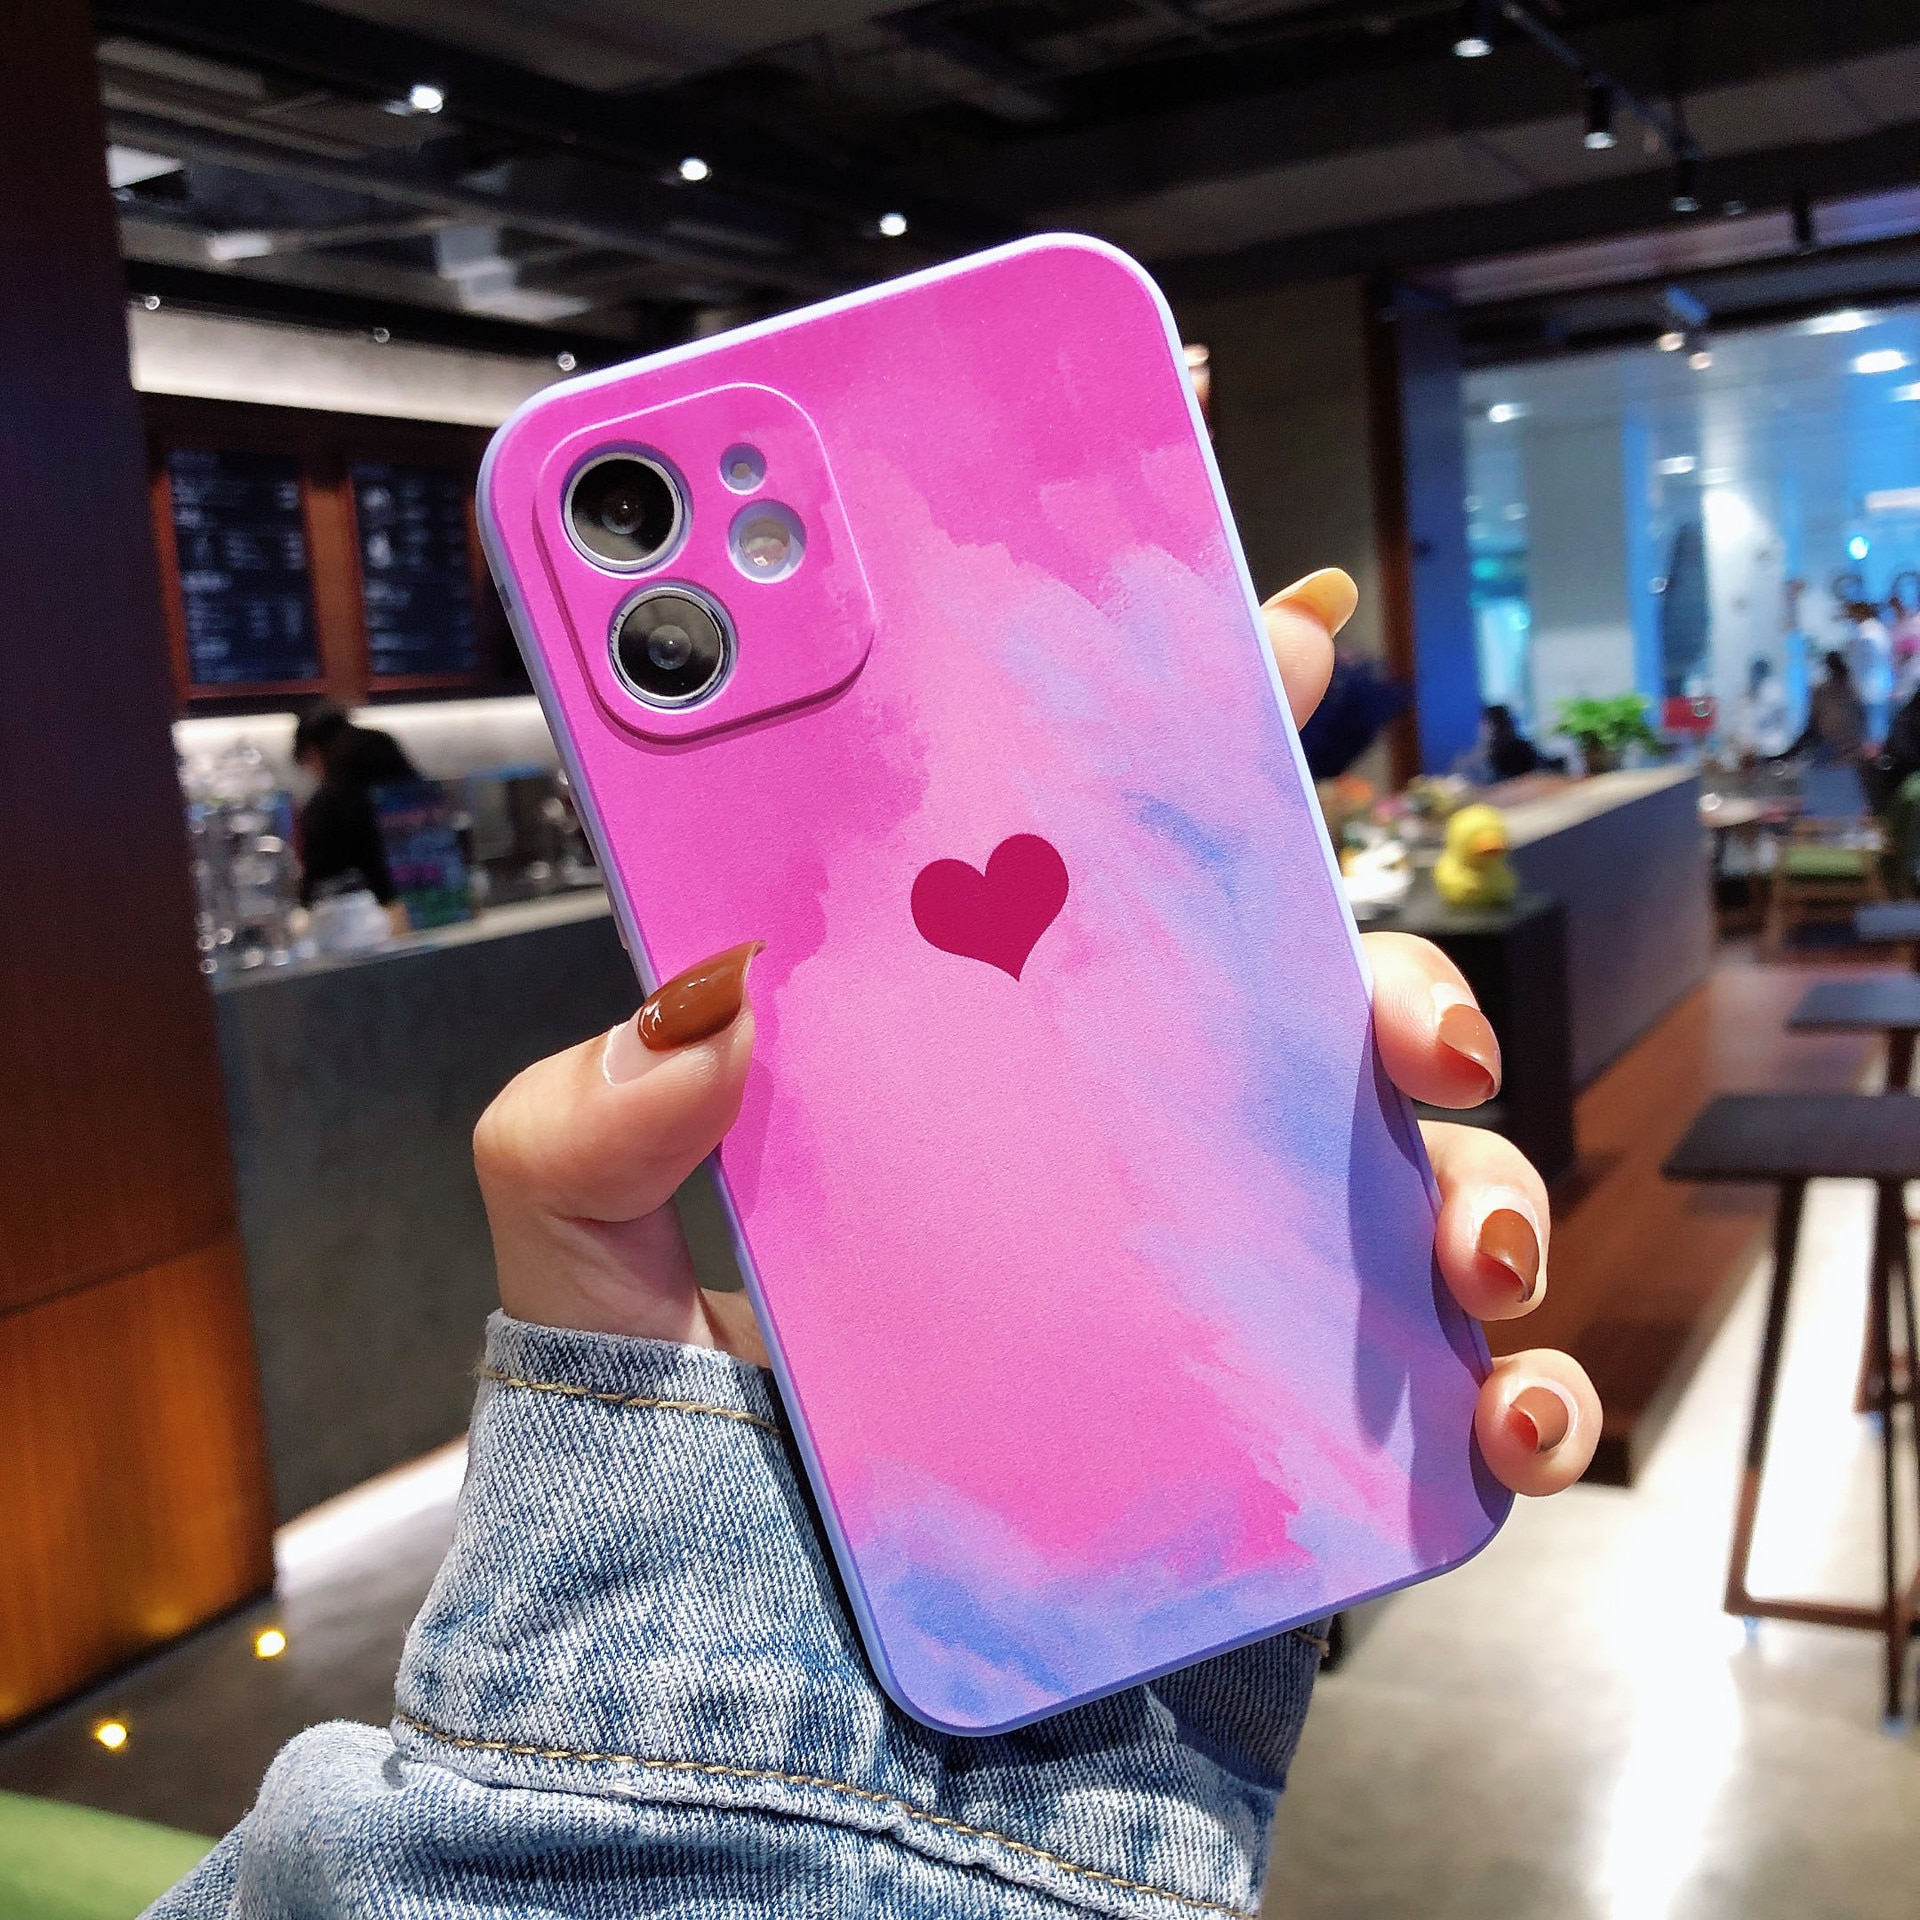 Gradient Watercolor Love Heart Phone Case For iPhone 11 Pro Max 12 Mini X XS XR 8 7 Plus SE 2020 Shockproof Soft Silicone Cover